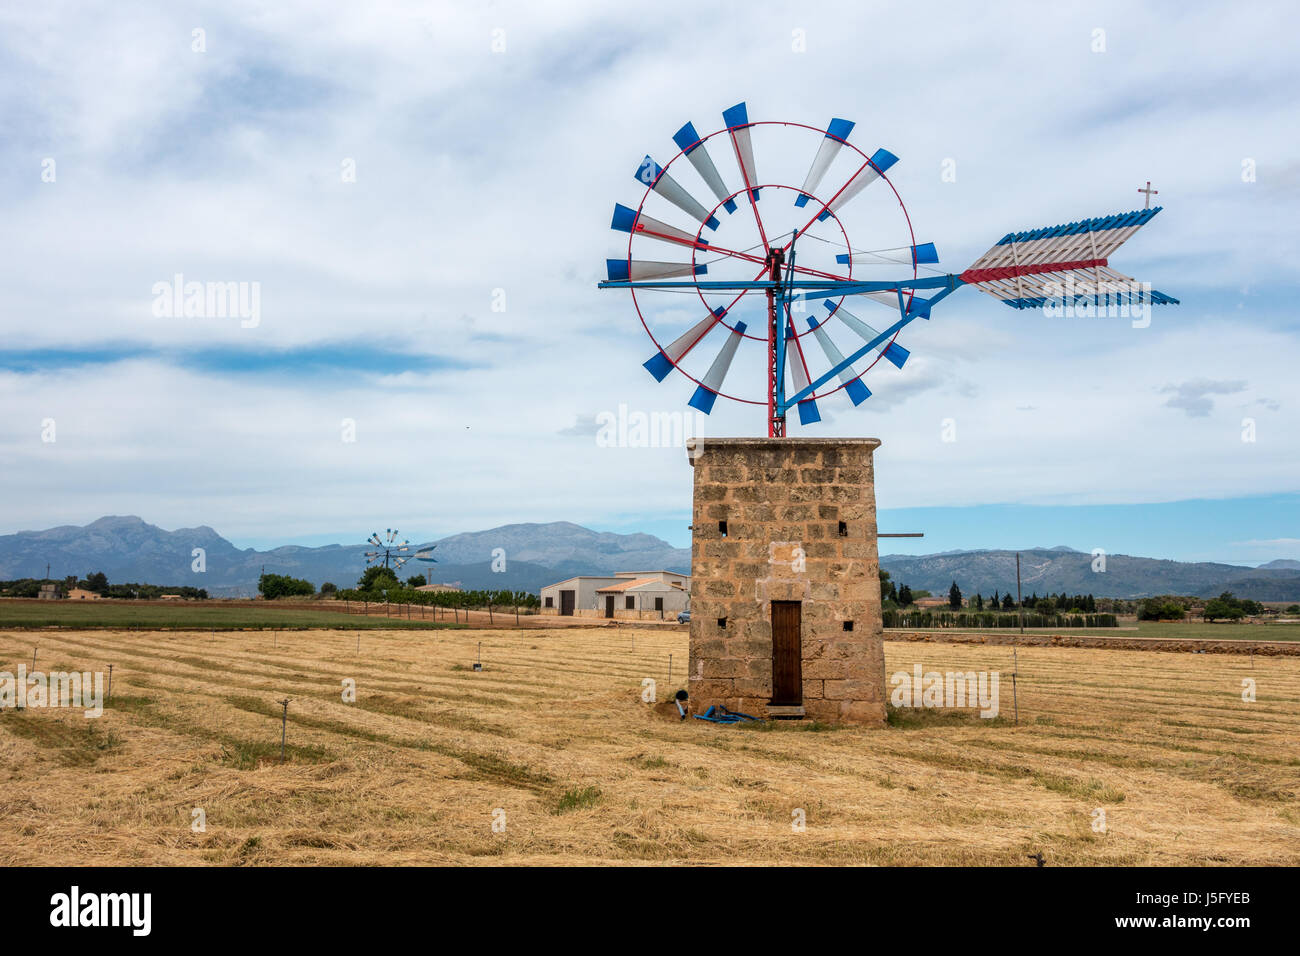 Old windmill used for farming in north Mallorca, Majorca, Balearic Islands, Spain - Stock Image